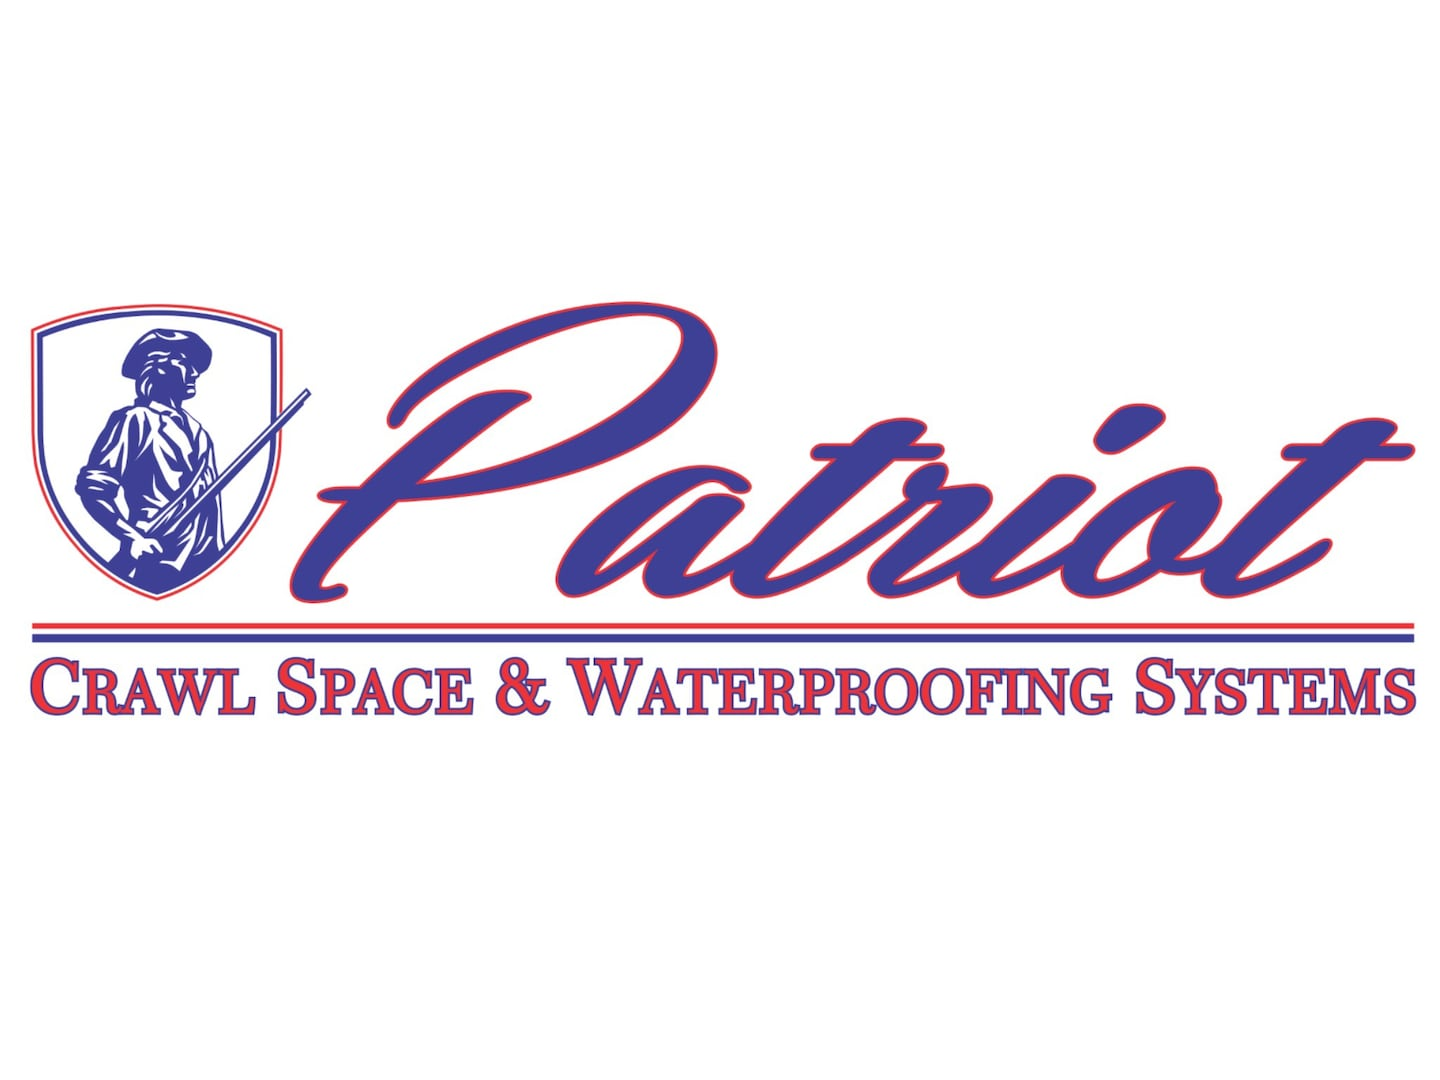 Patriot Crawl Space & Waterproofing Systems